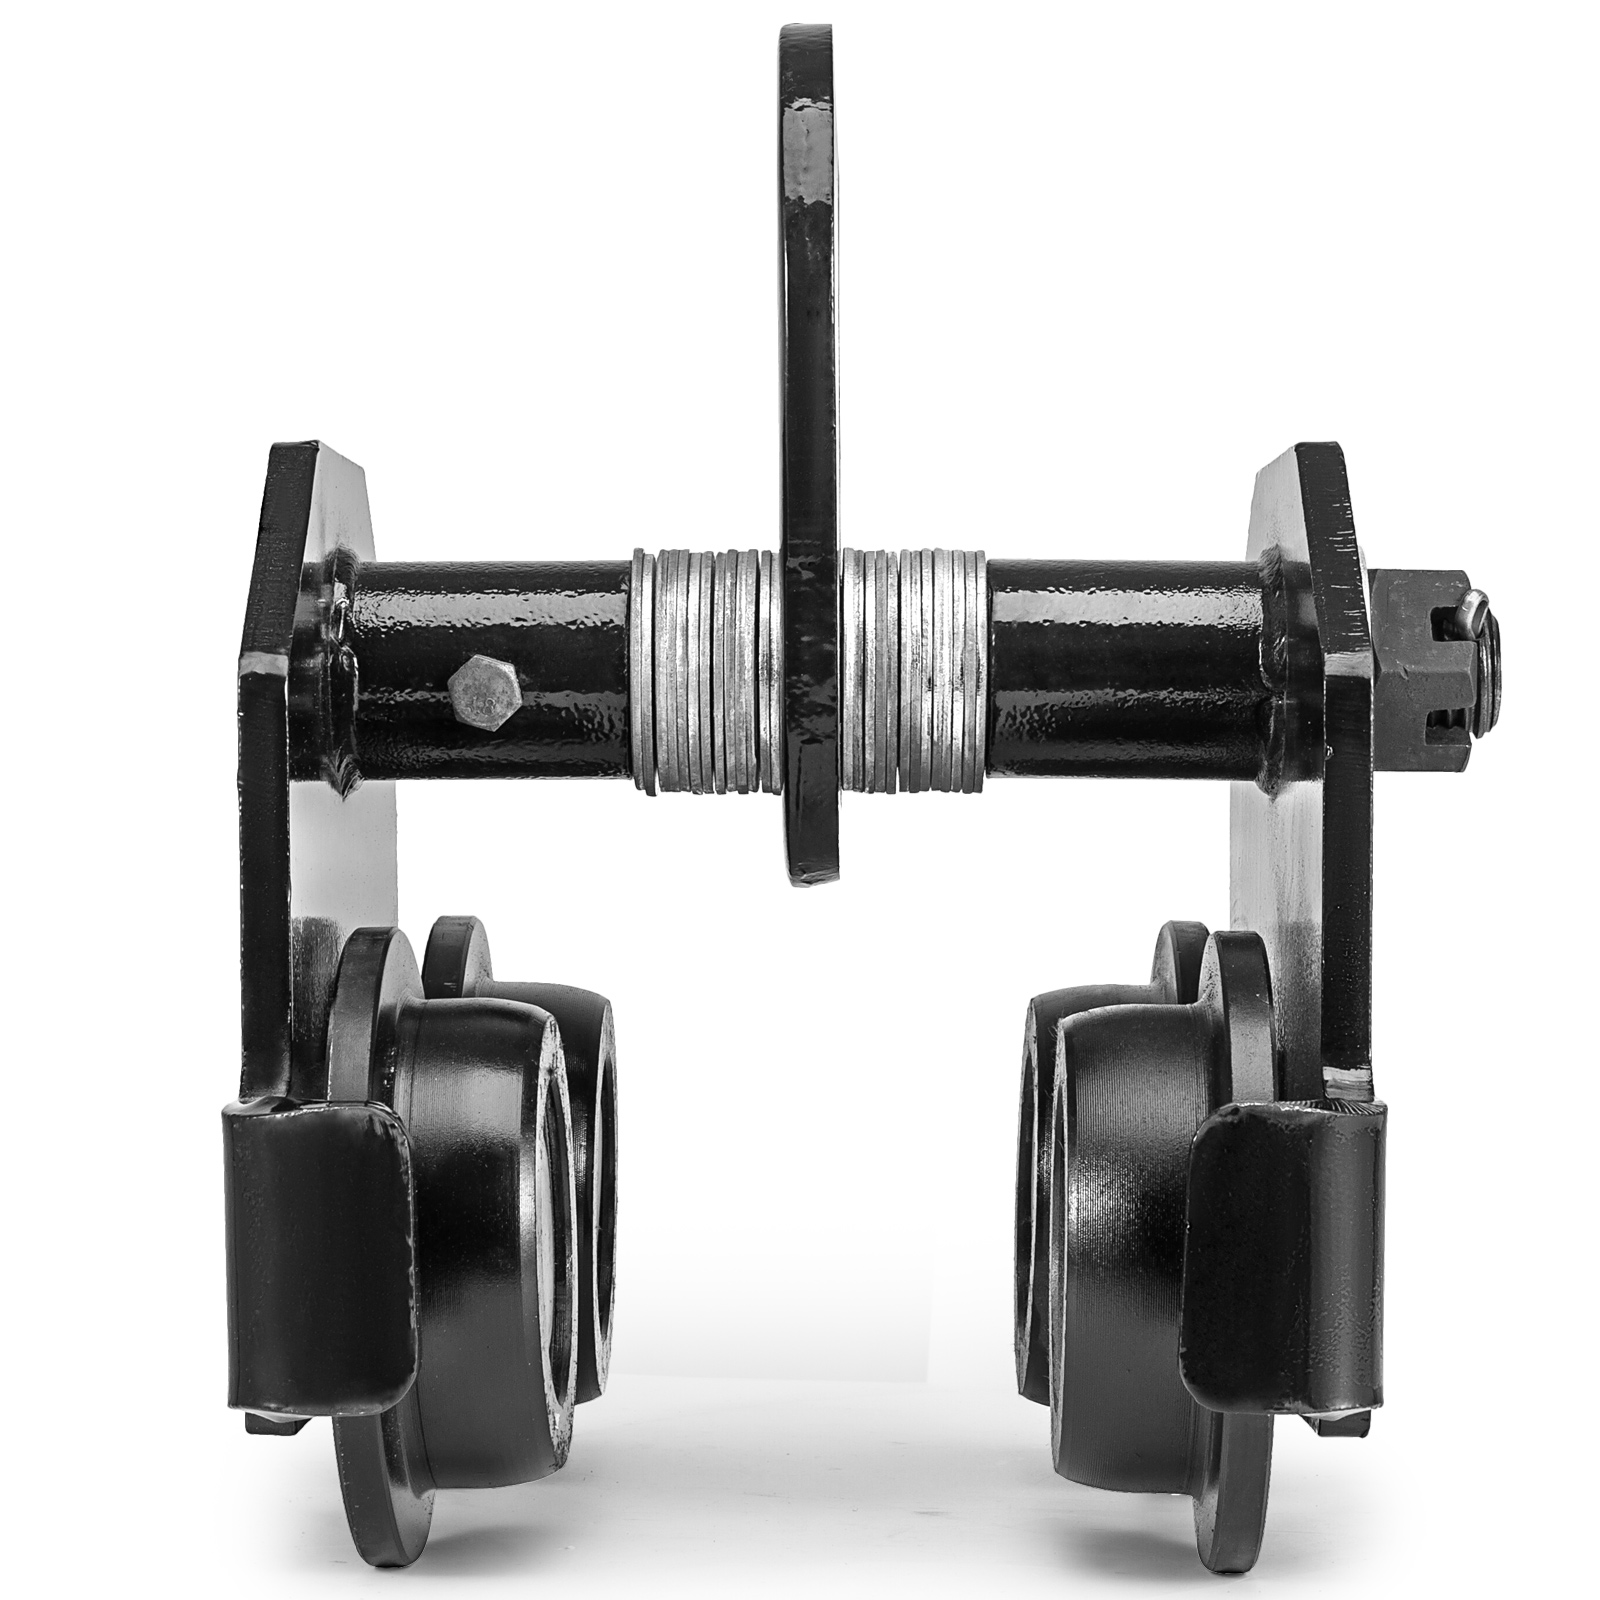 0-5T-2T-3T-Ton-Push-Beam-Trolley-For-Heavy-Loads-To-6600-Lb-Fits-Straight-I-Beam miniature 64